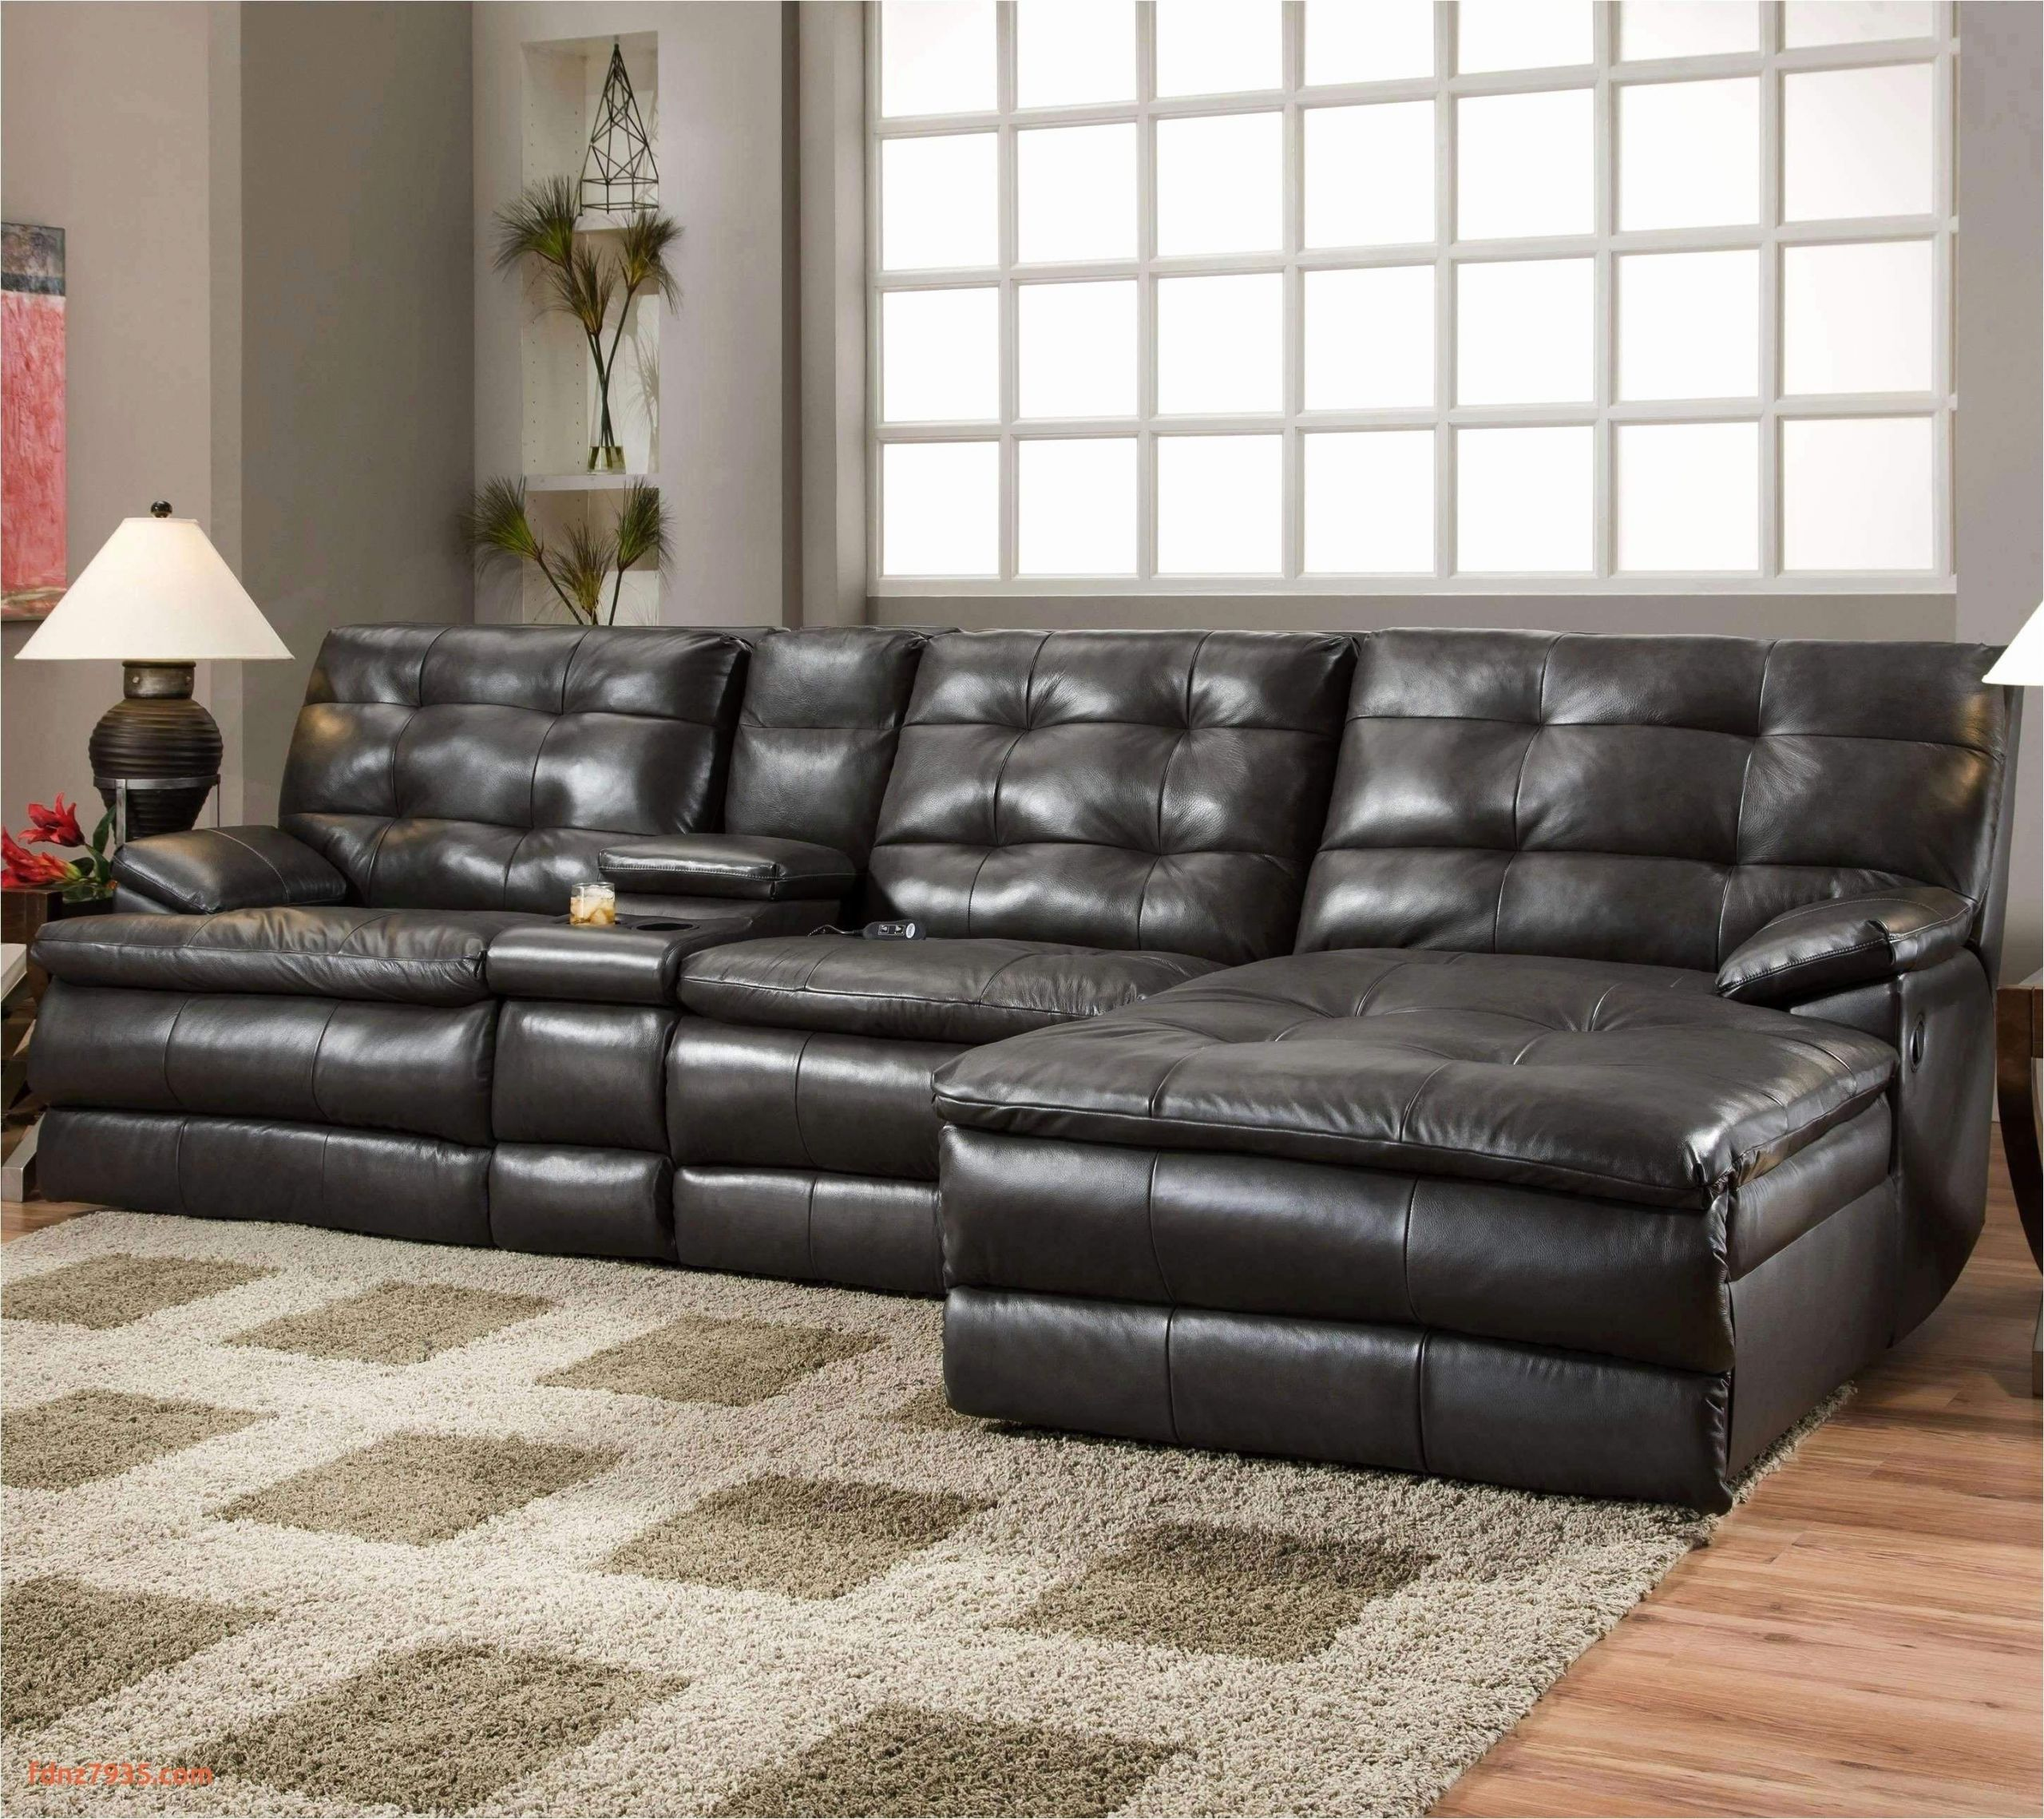 french style living room elegant rustic leather sofa fresh sofa design of french style living room